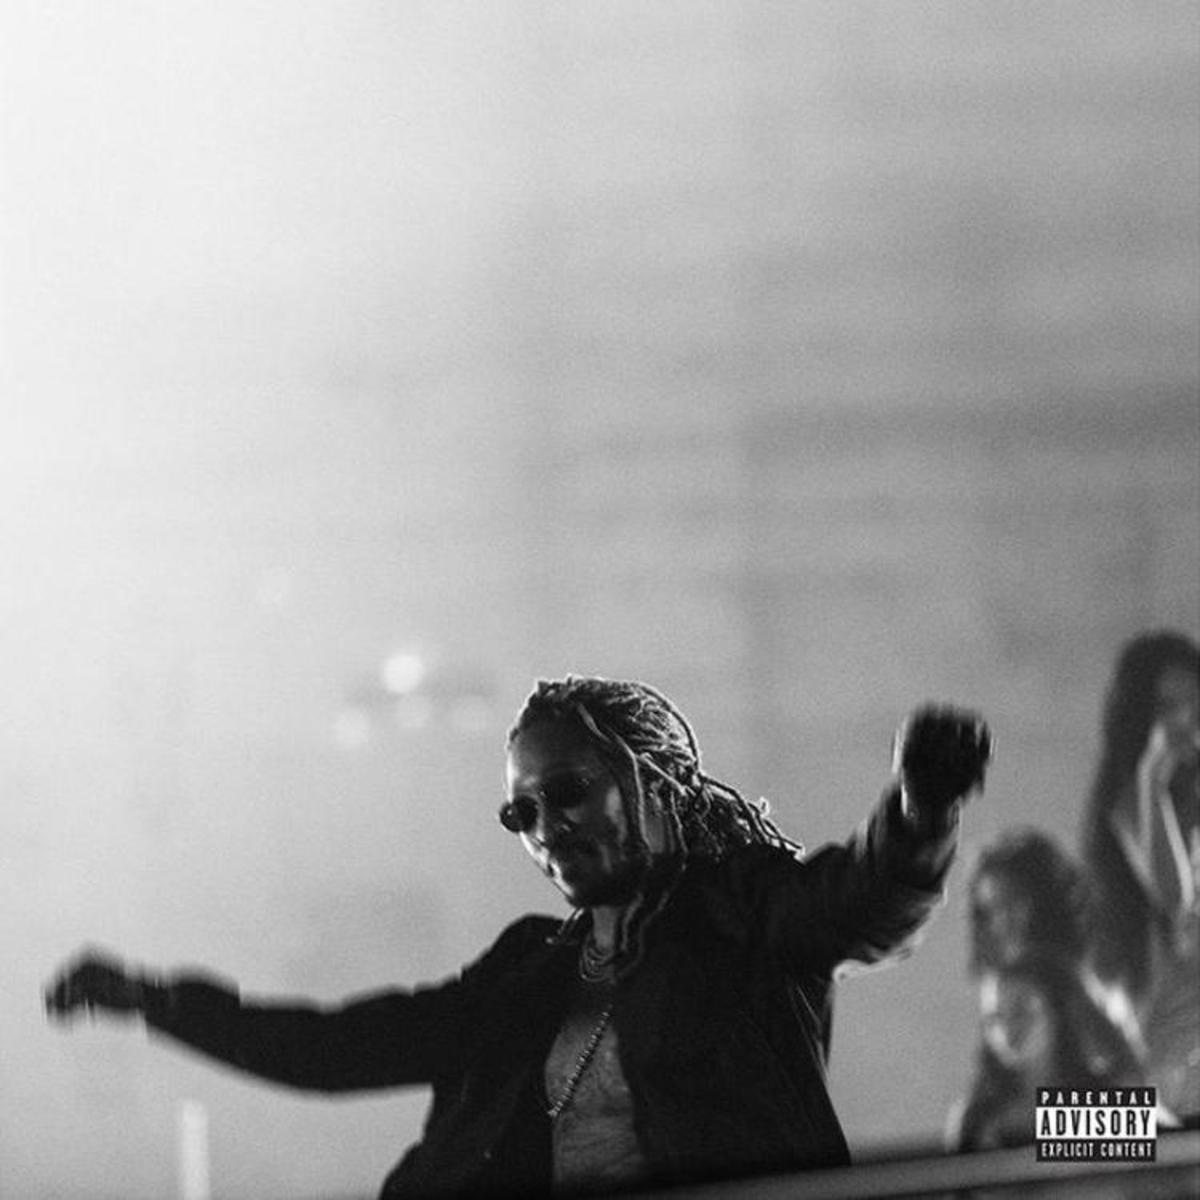 Future Ft Travis Scott - Solitaires Mp3 Download [iTunes + CDQ]